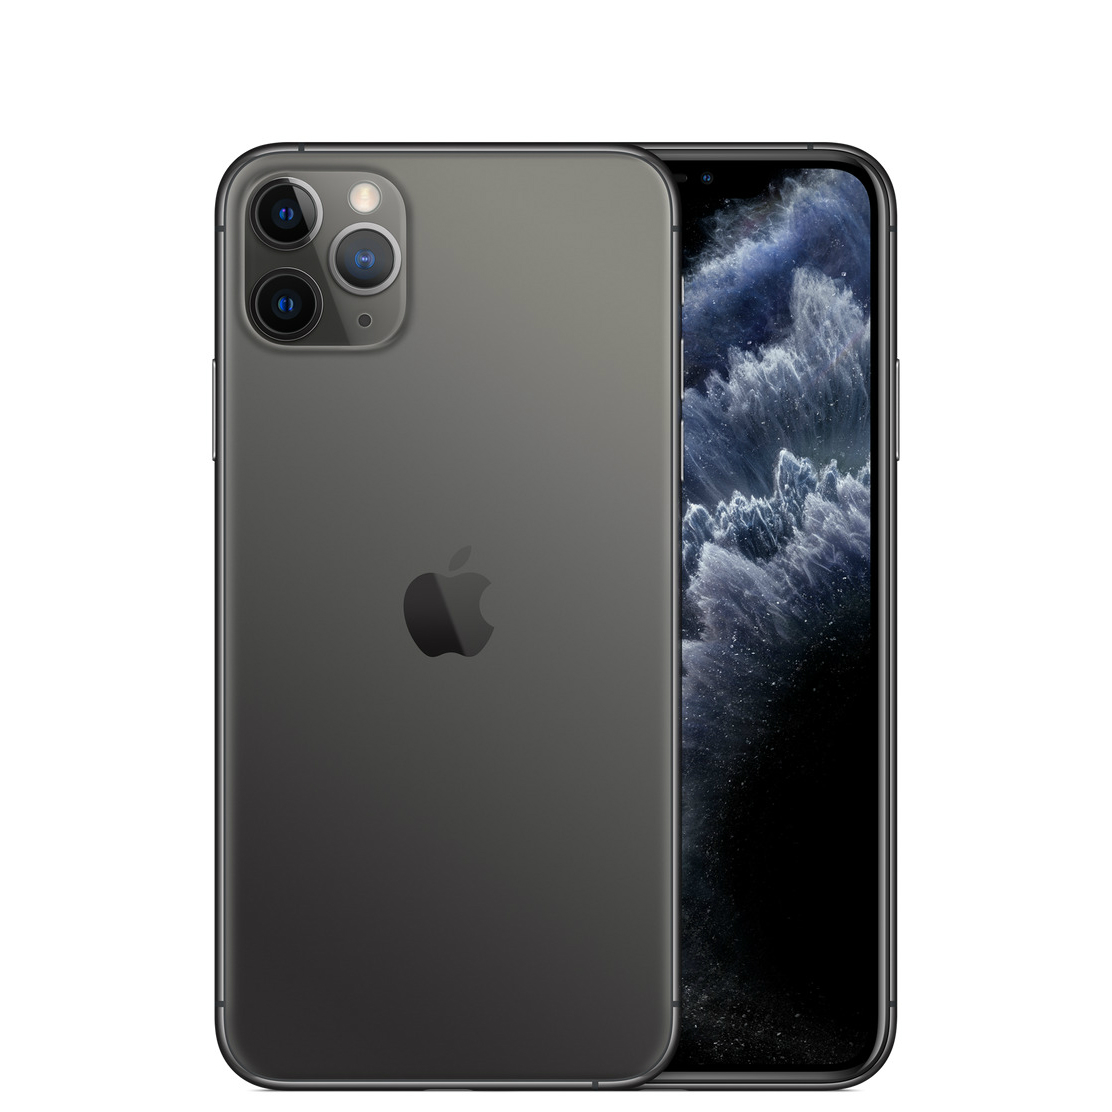 Image of Apple iPhone 11 Pro Max 64GB A2220 Dual Sim with Tempered Glass Screen Protector - Space Gray